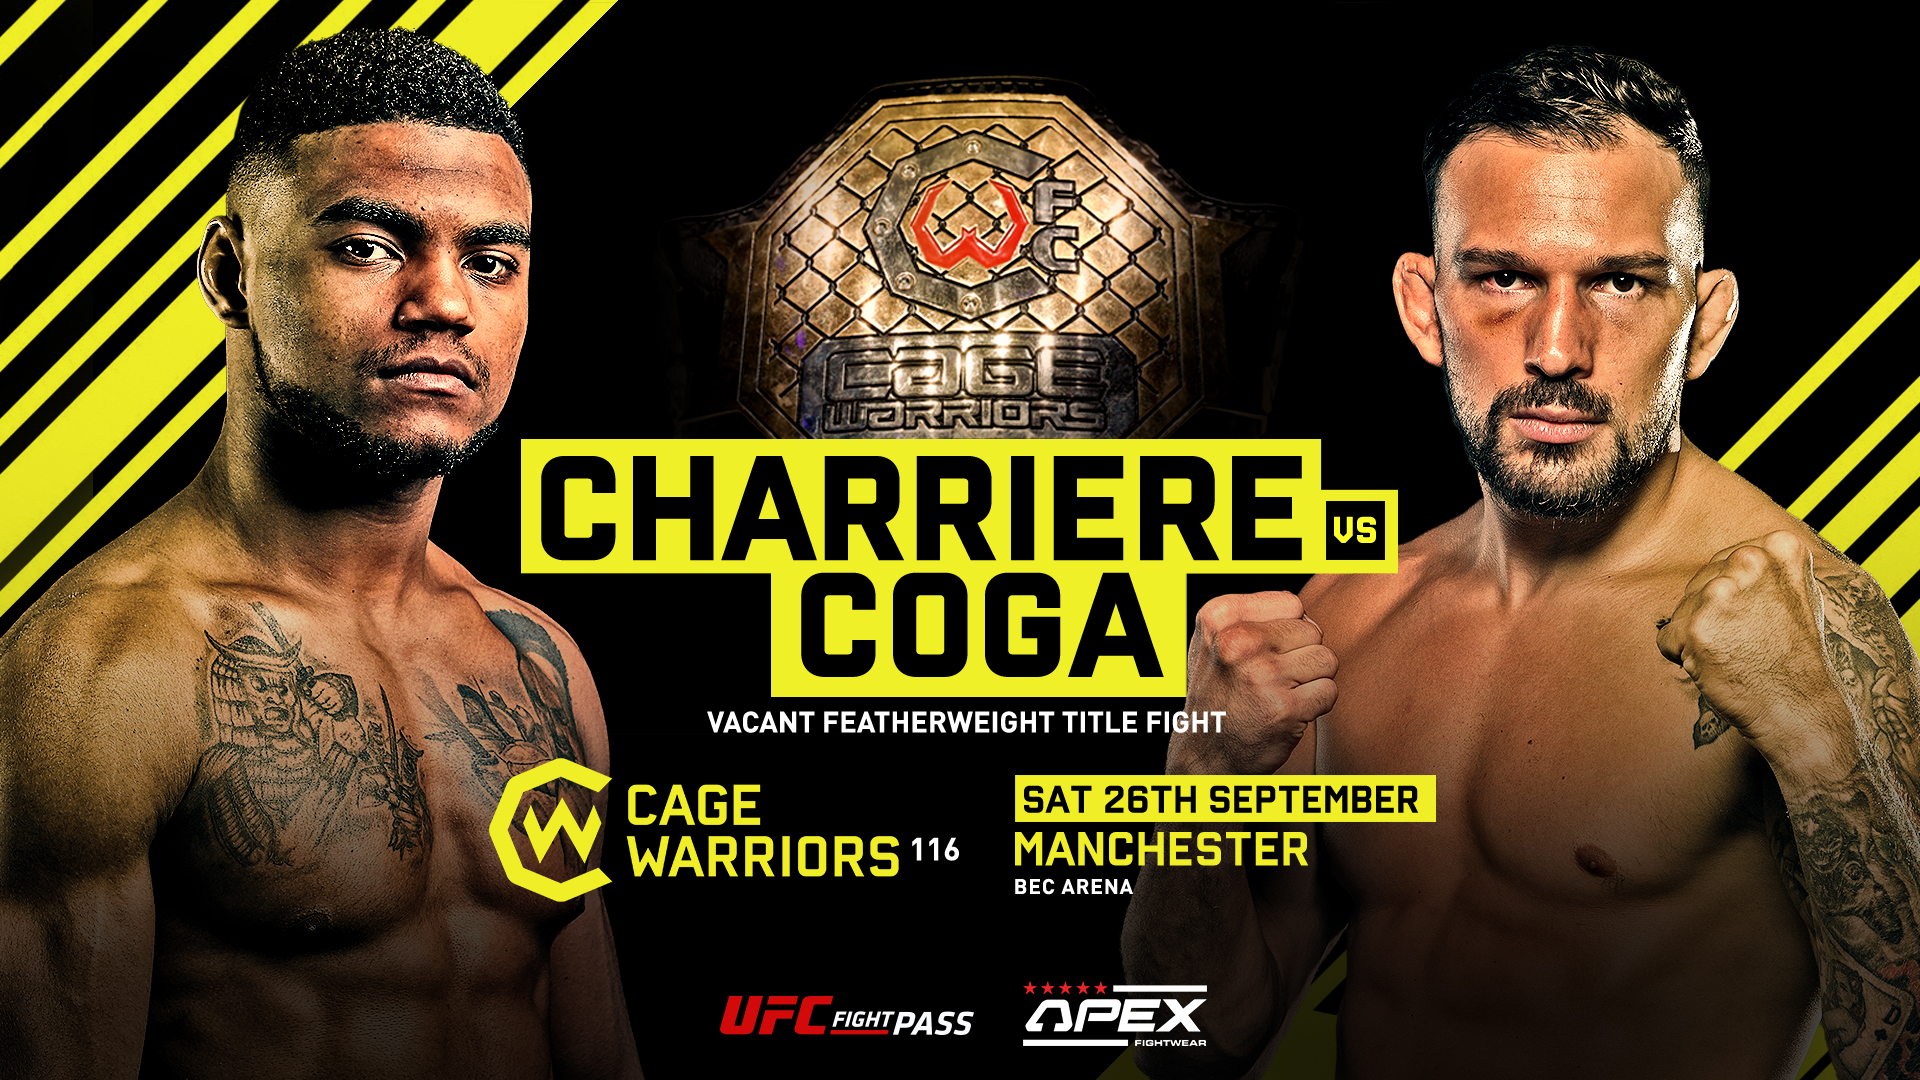 Cage Warriors 116 – Charrière vs Coga Announced